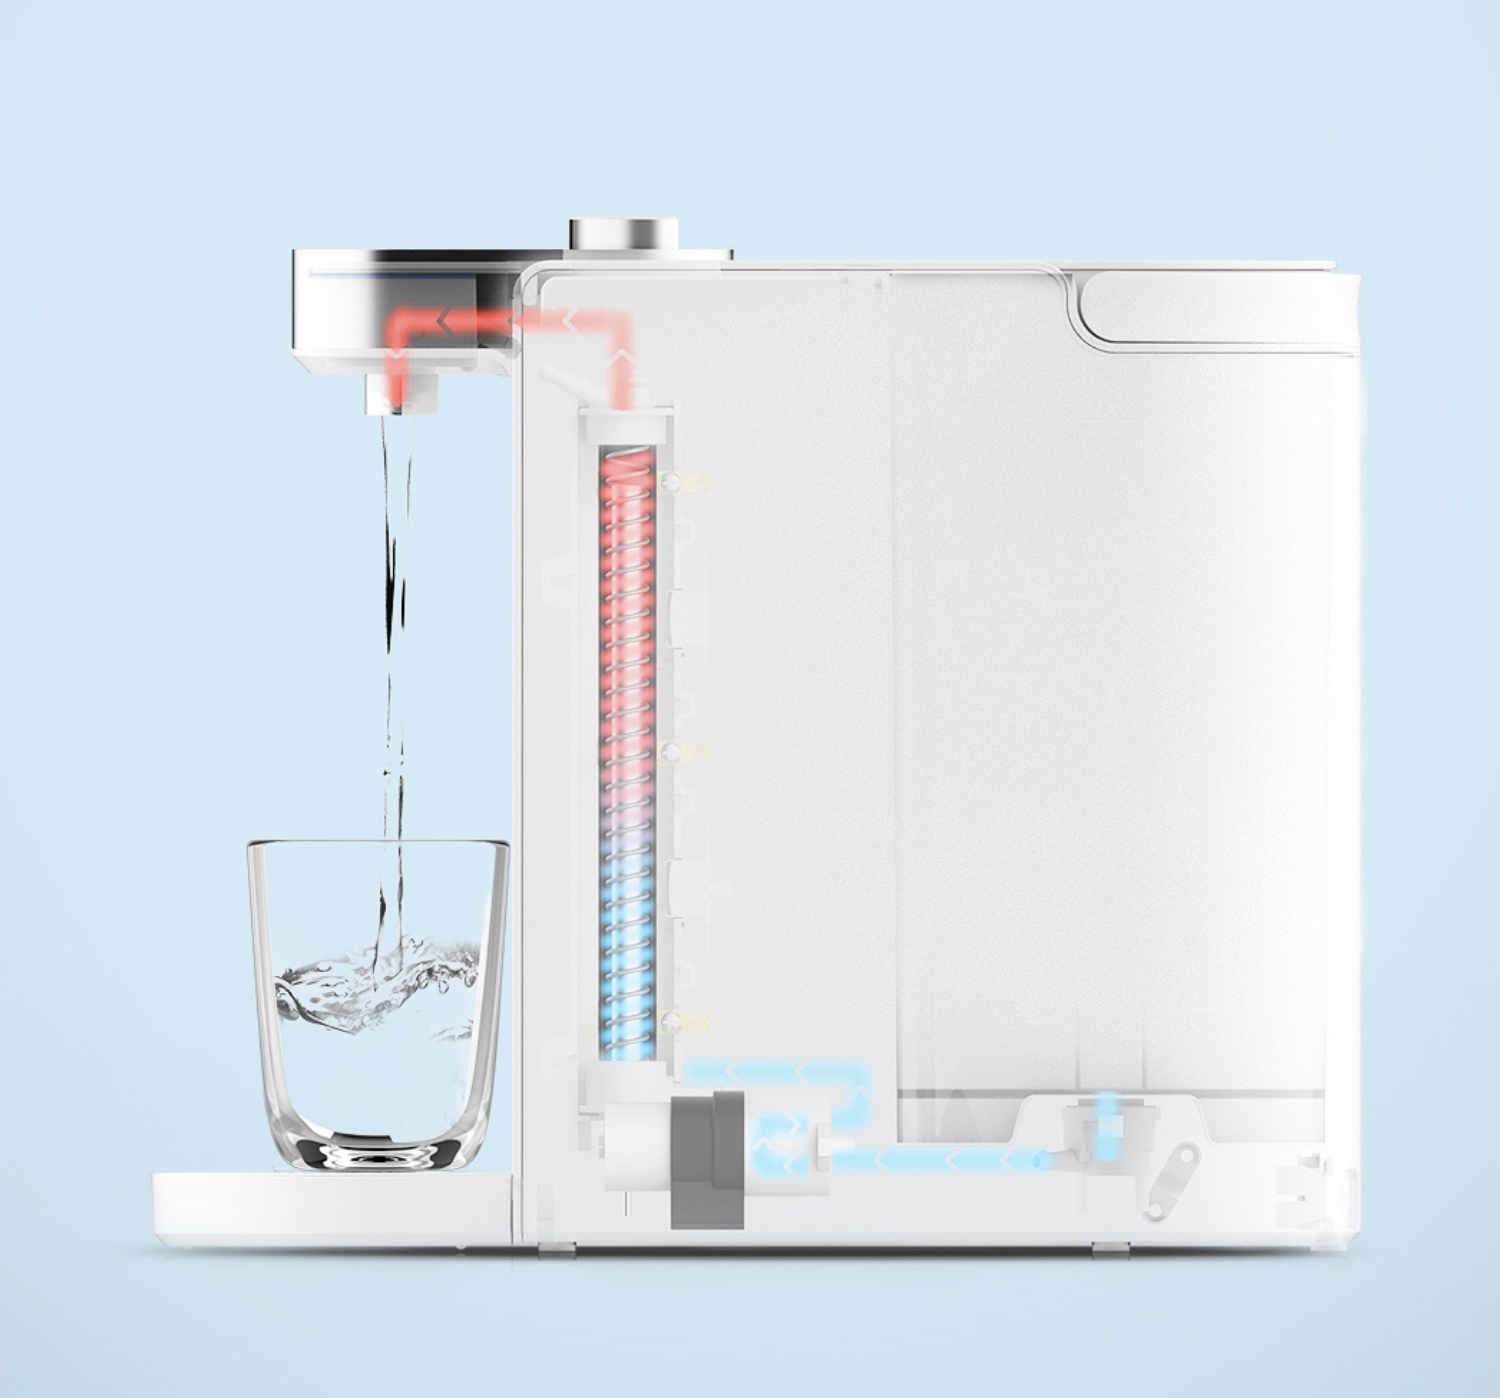 Scishare water heater